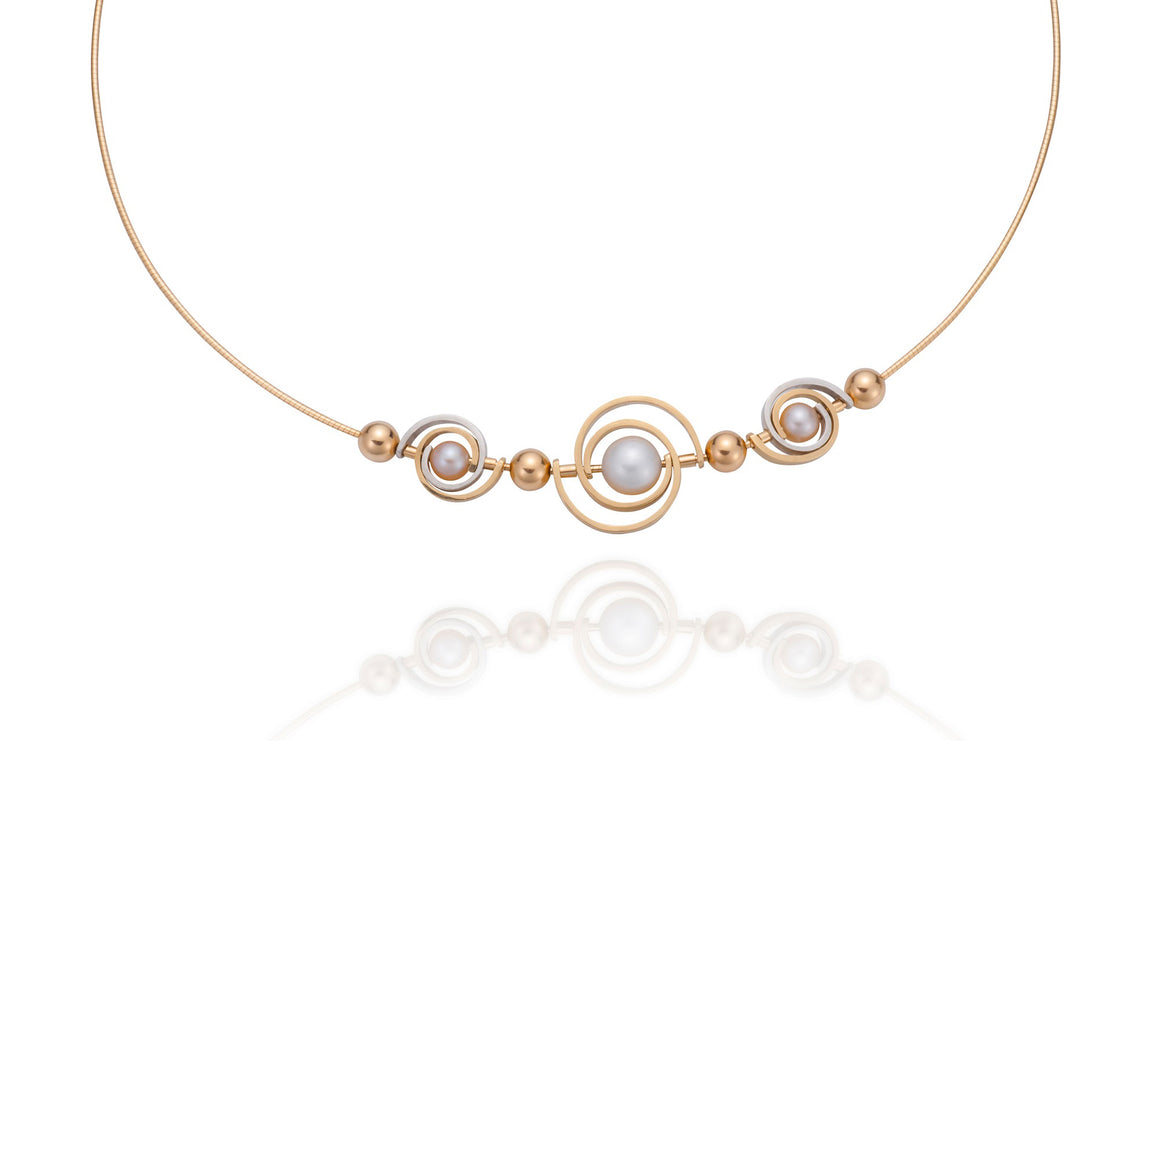 Triple Spiral Orbit Necklace by Martha Seely - Talisman Collection Fine Jewelers